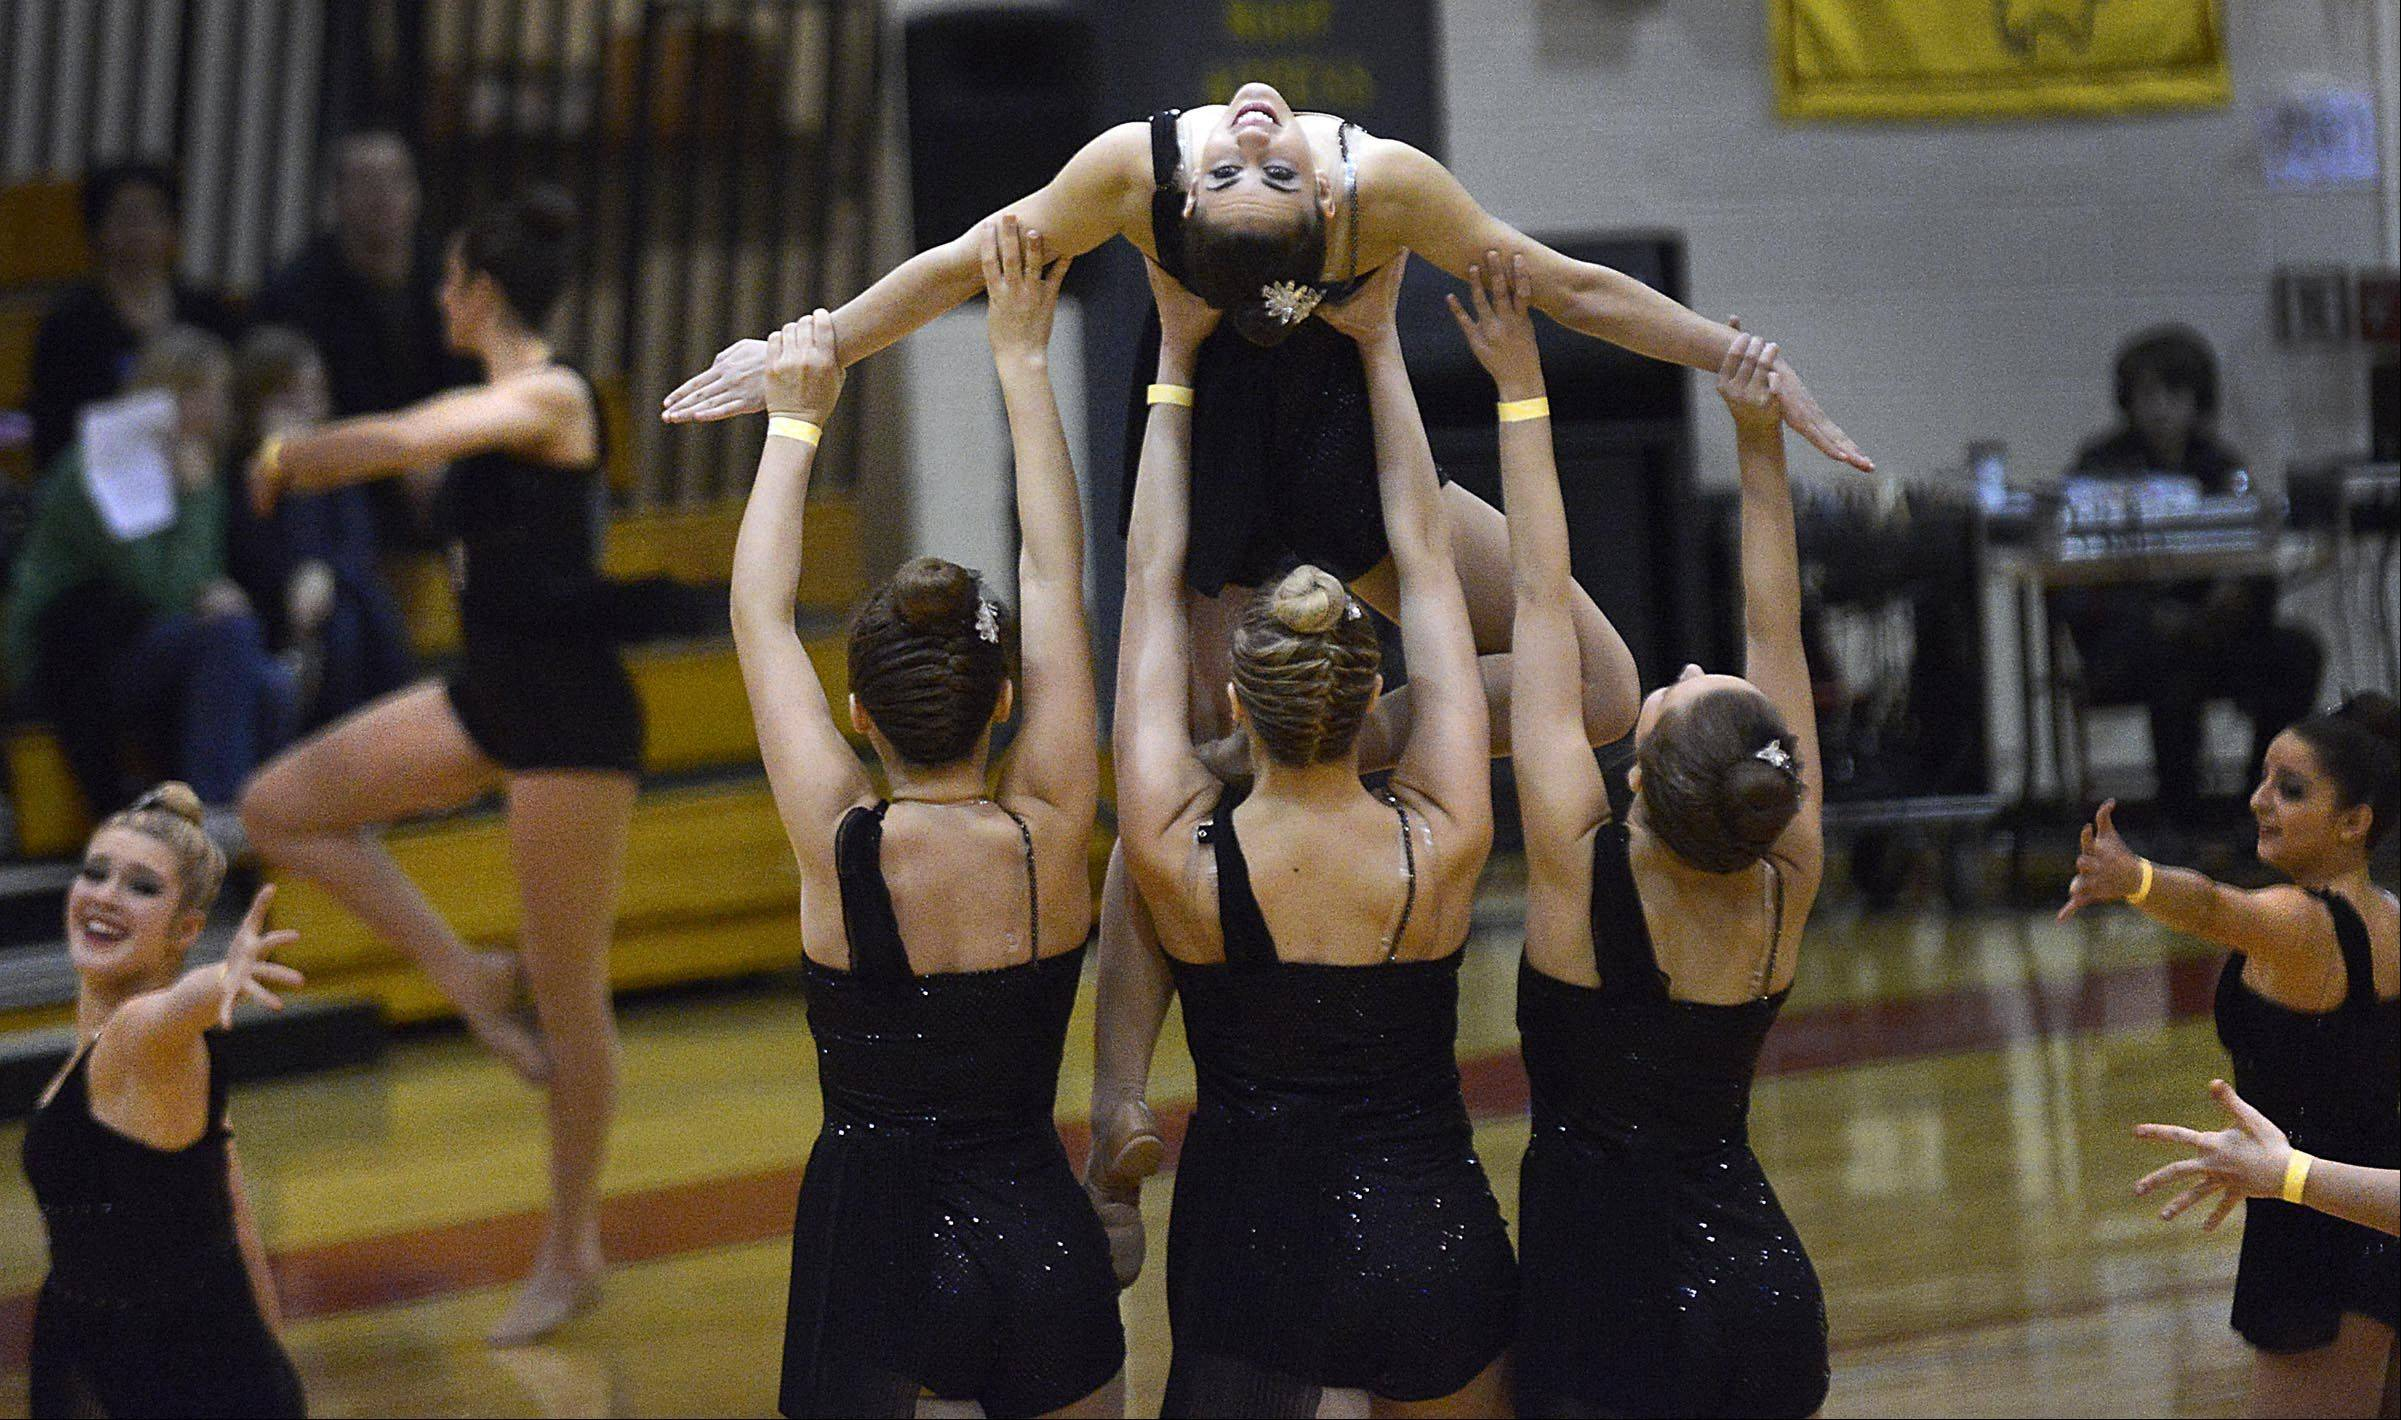 The Geneva High School dance team performs in the Lyrical category Sunday during the Batavia High School Team Dance Illinois Dance Classic.